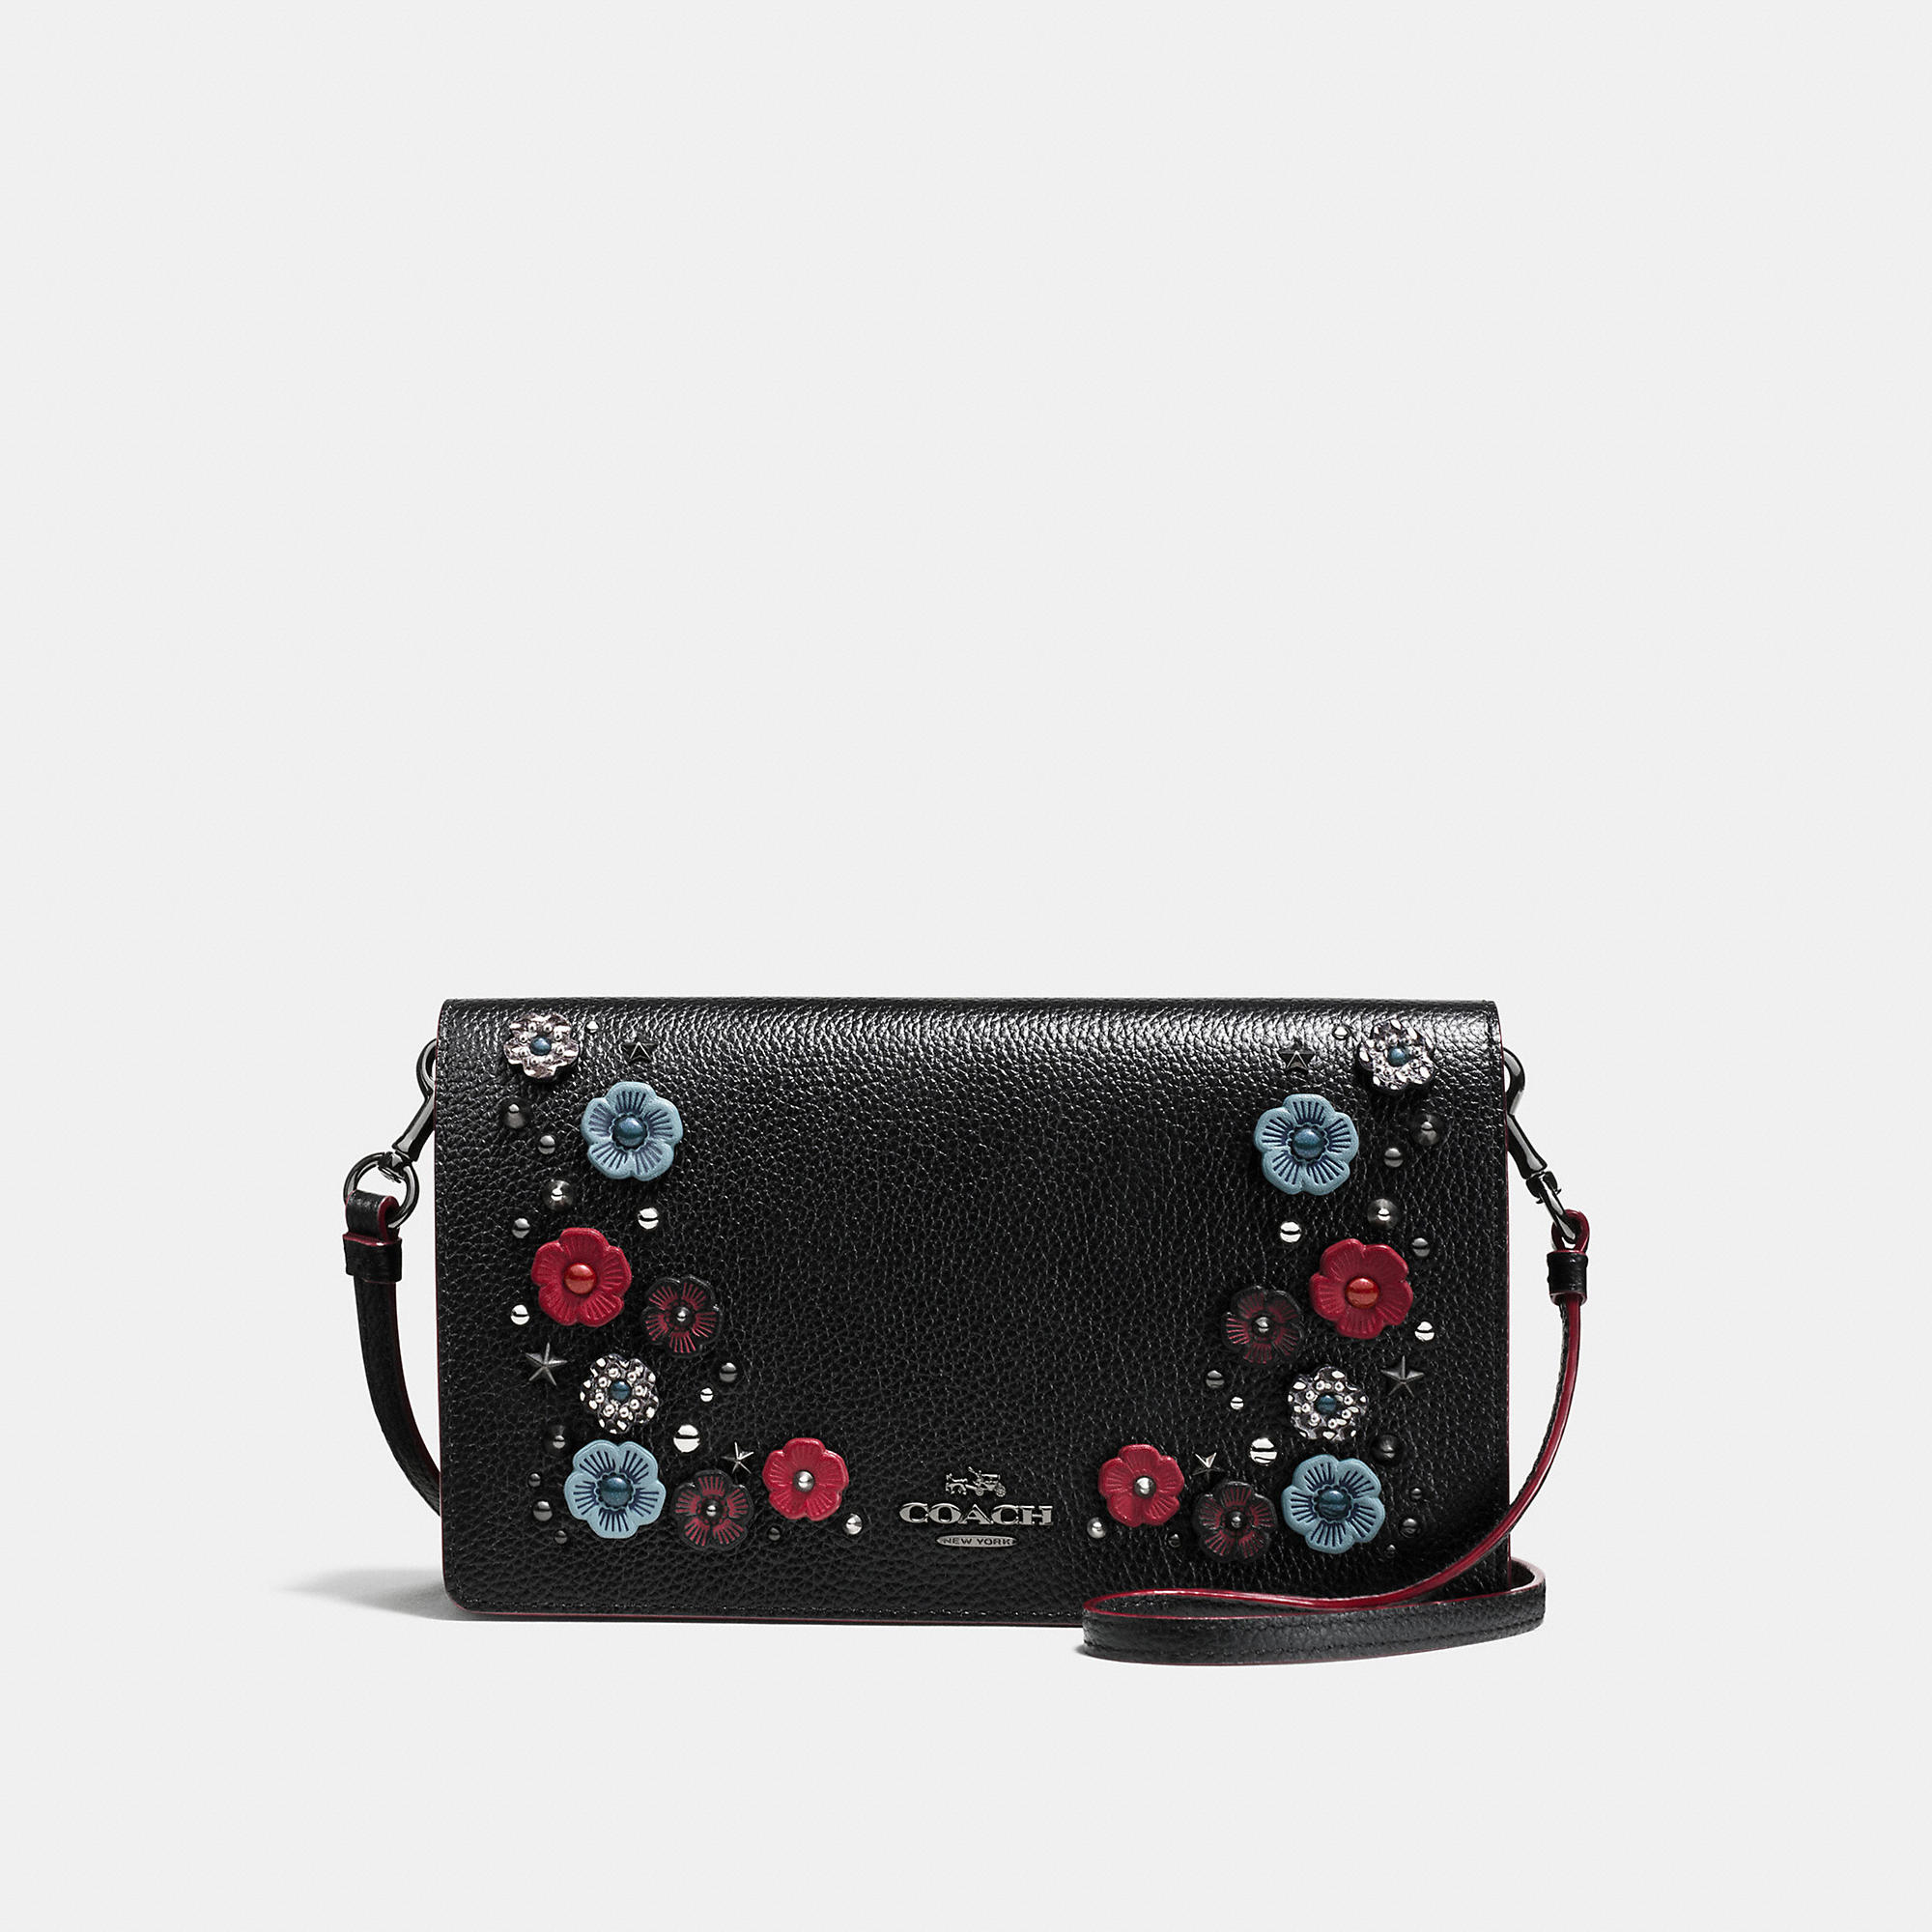 Coach Foldover Crossbody Clutch In Polished Pebble Leather With Snake Willow Floral